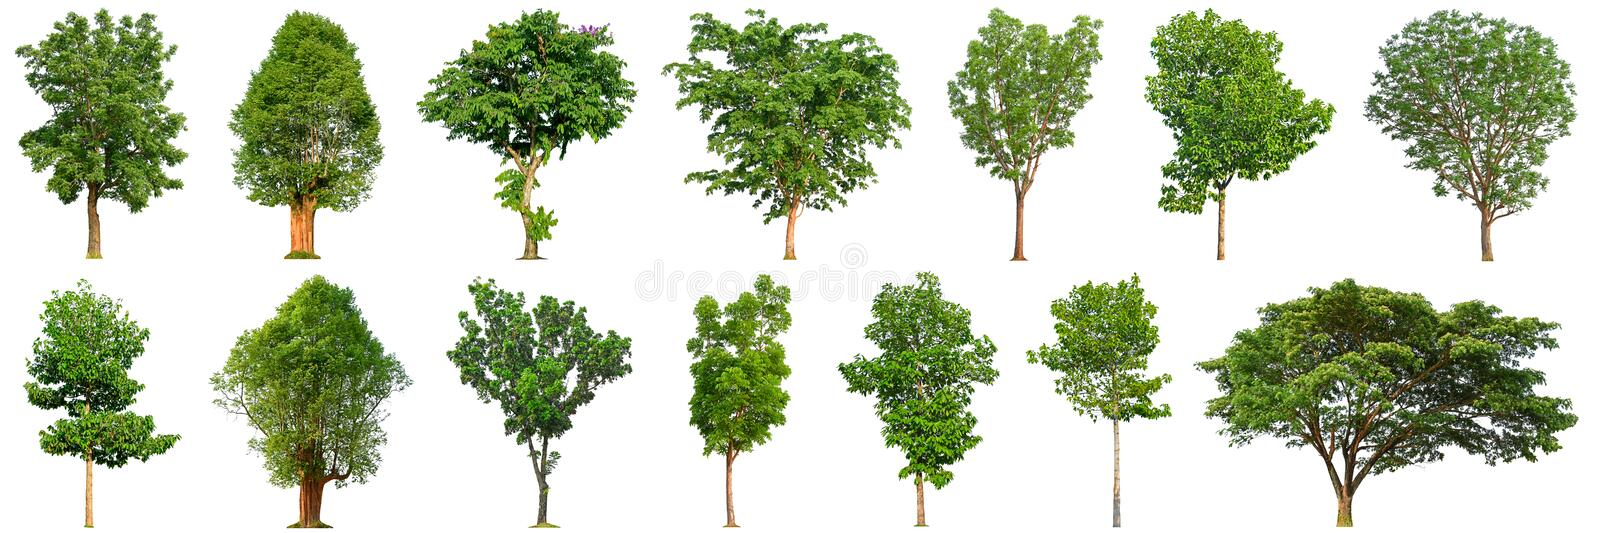 Tree collection isolated on white background 14 trees. royalty free stock images